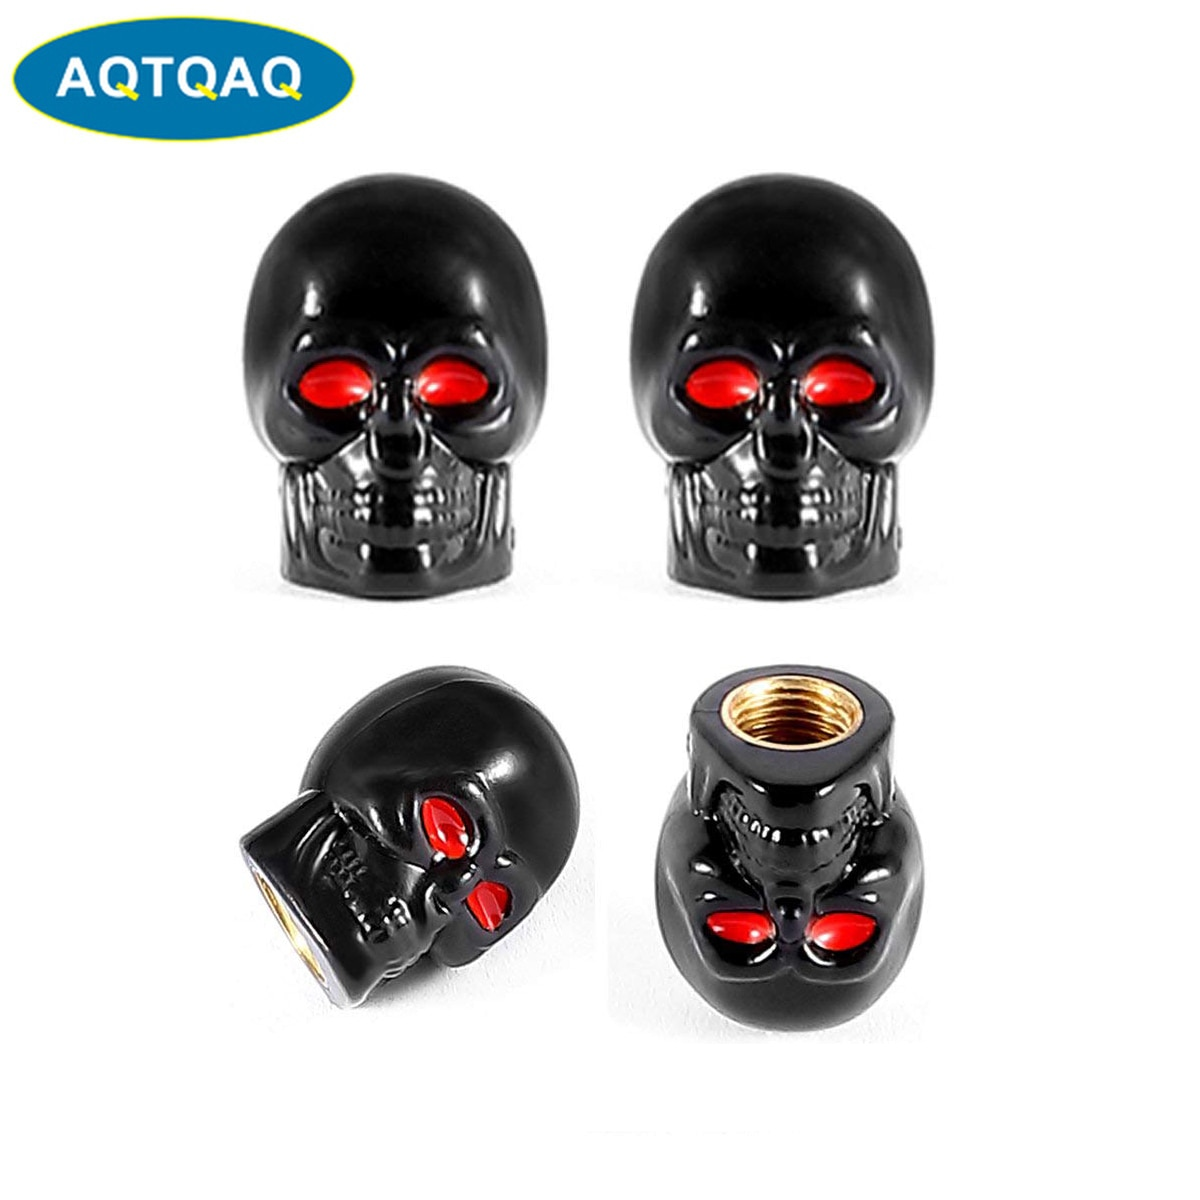 4Pcs/Set Universal Car Skull Style Antirust Copper Core Motorcycle Bike Car Wheel Tyre Tires Valve Stem Caps